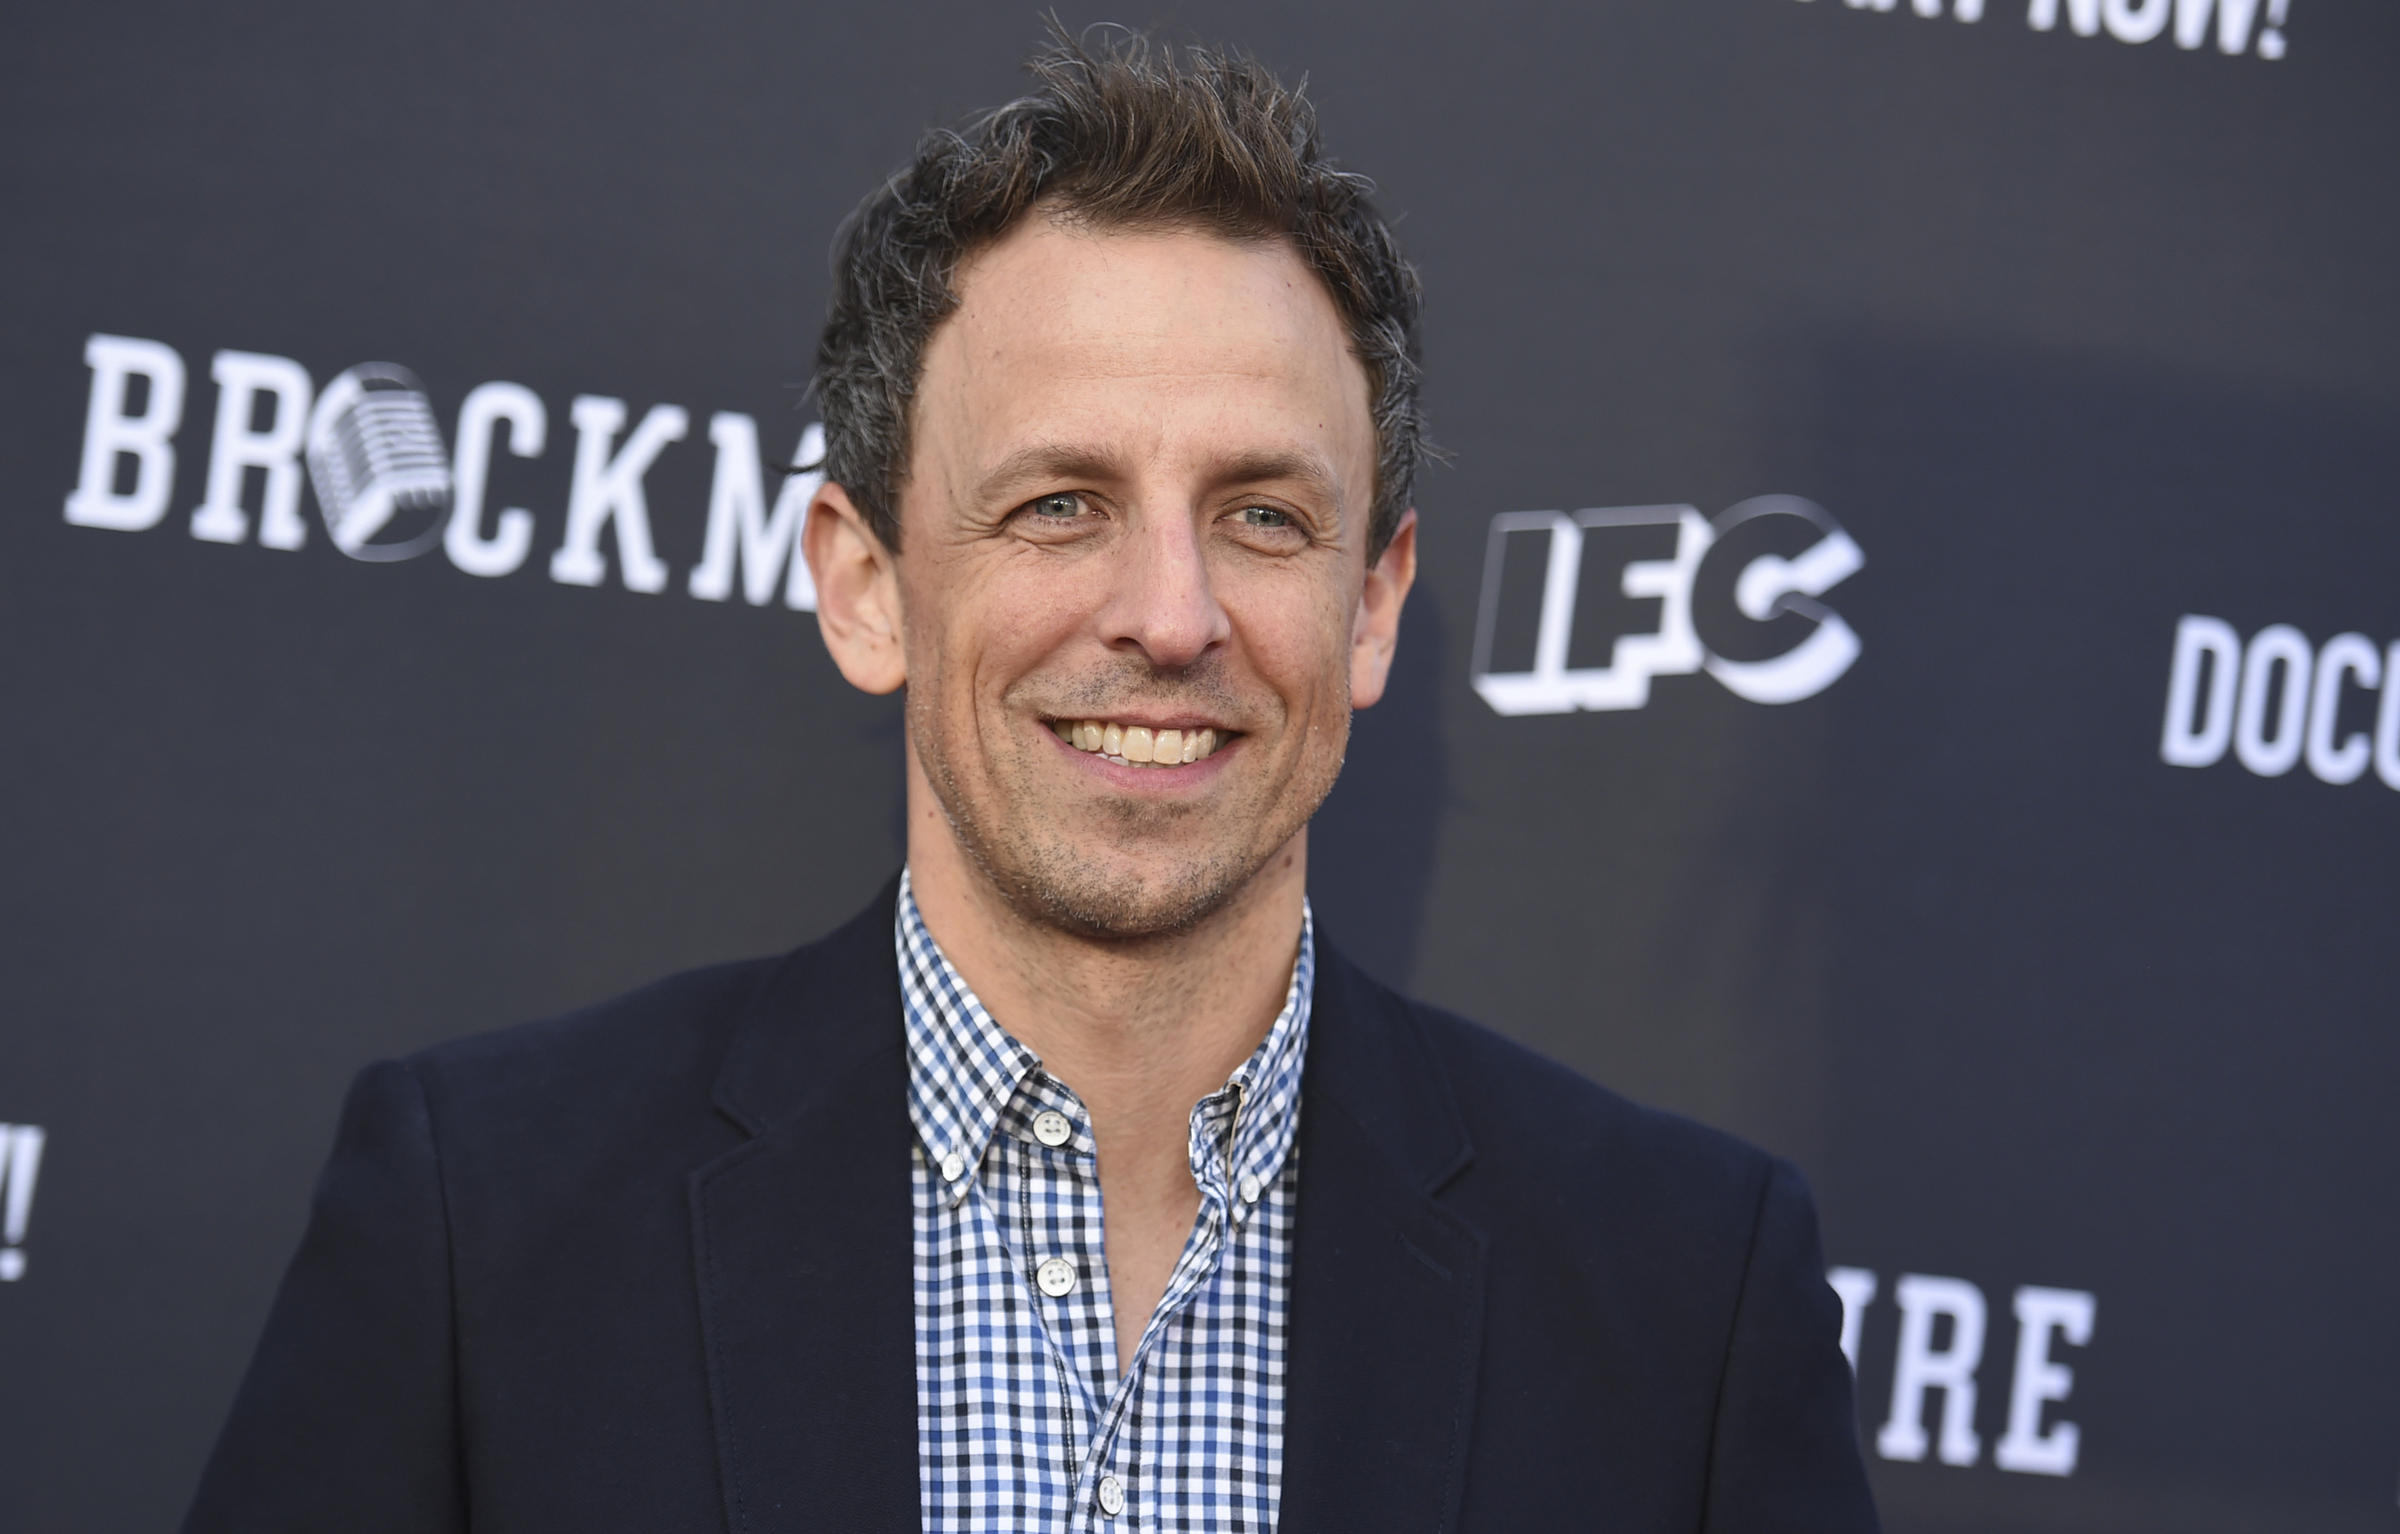 Seth Meyers Asks Netflix to Allow Users to 'Skip' Trump Jokes in New Special